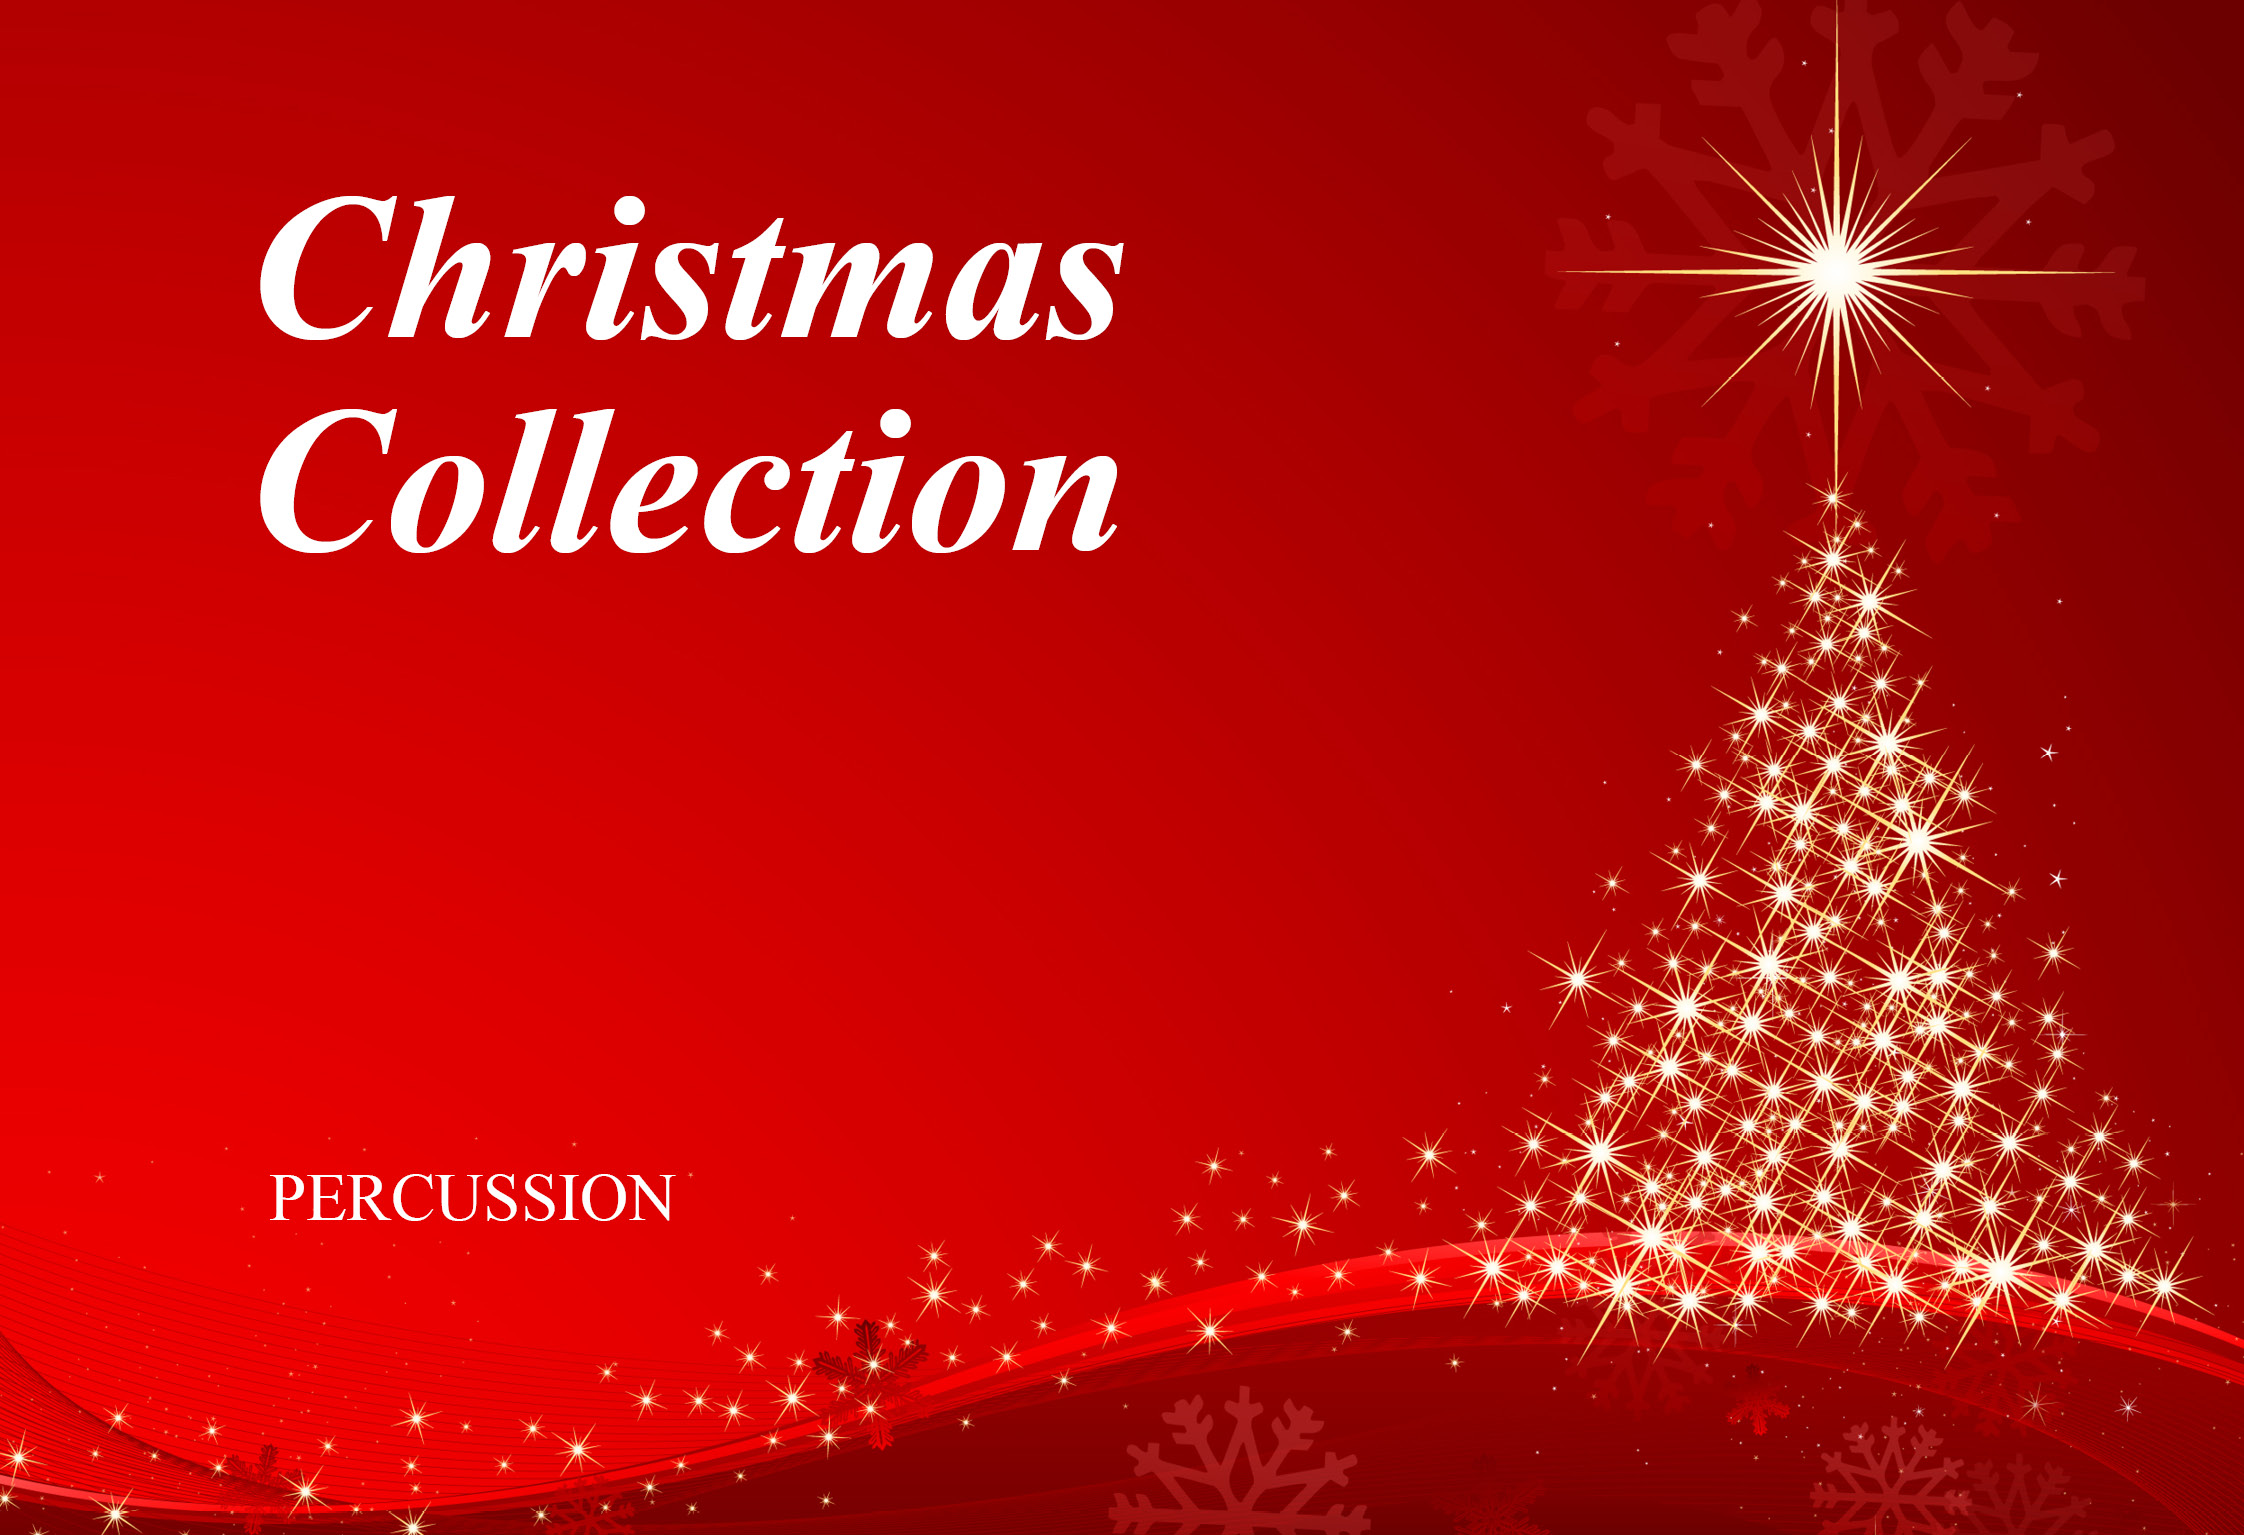 Christmas Collection - Percussion - March Card Size